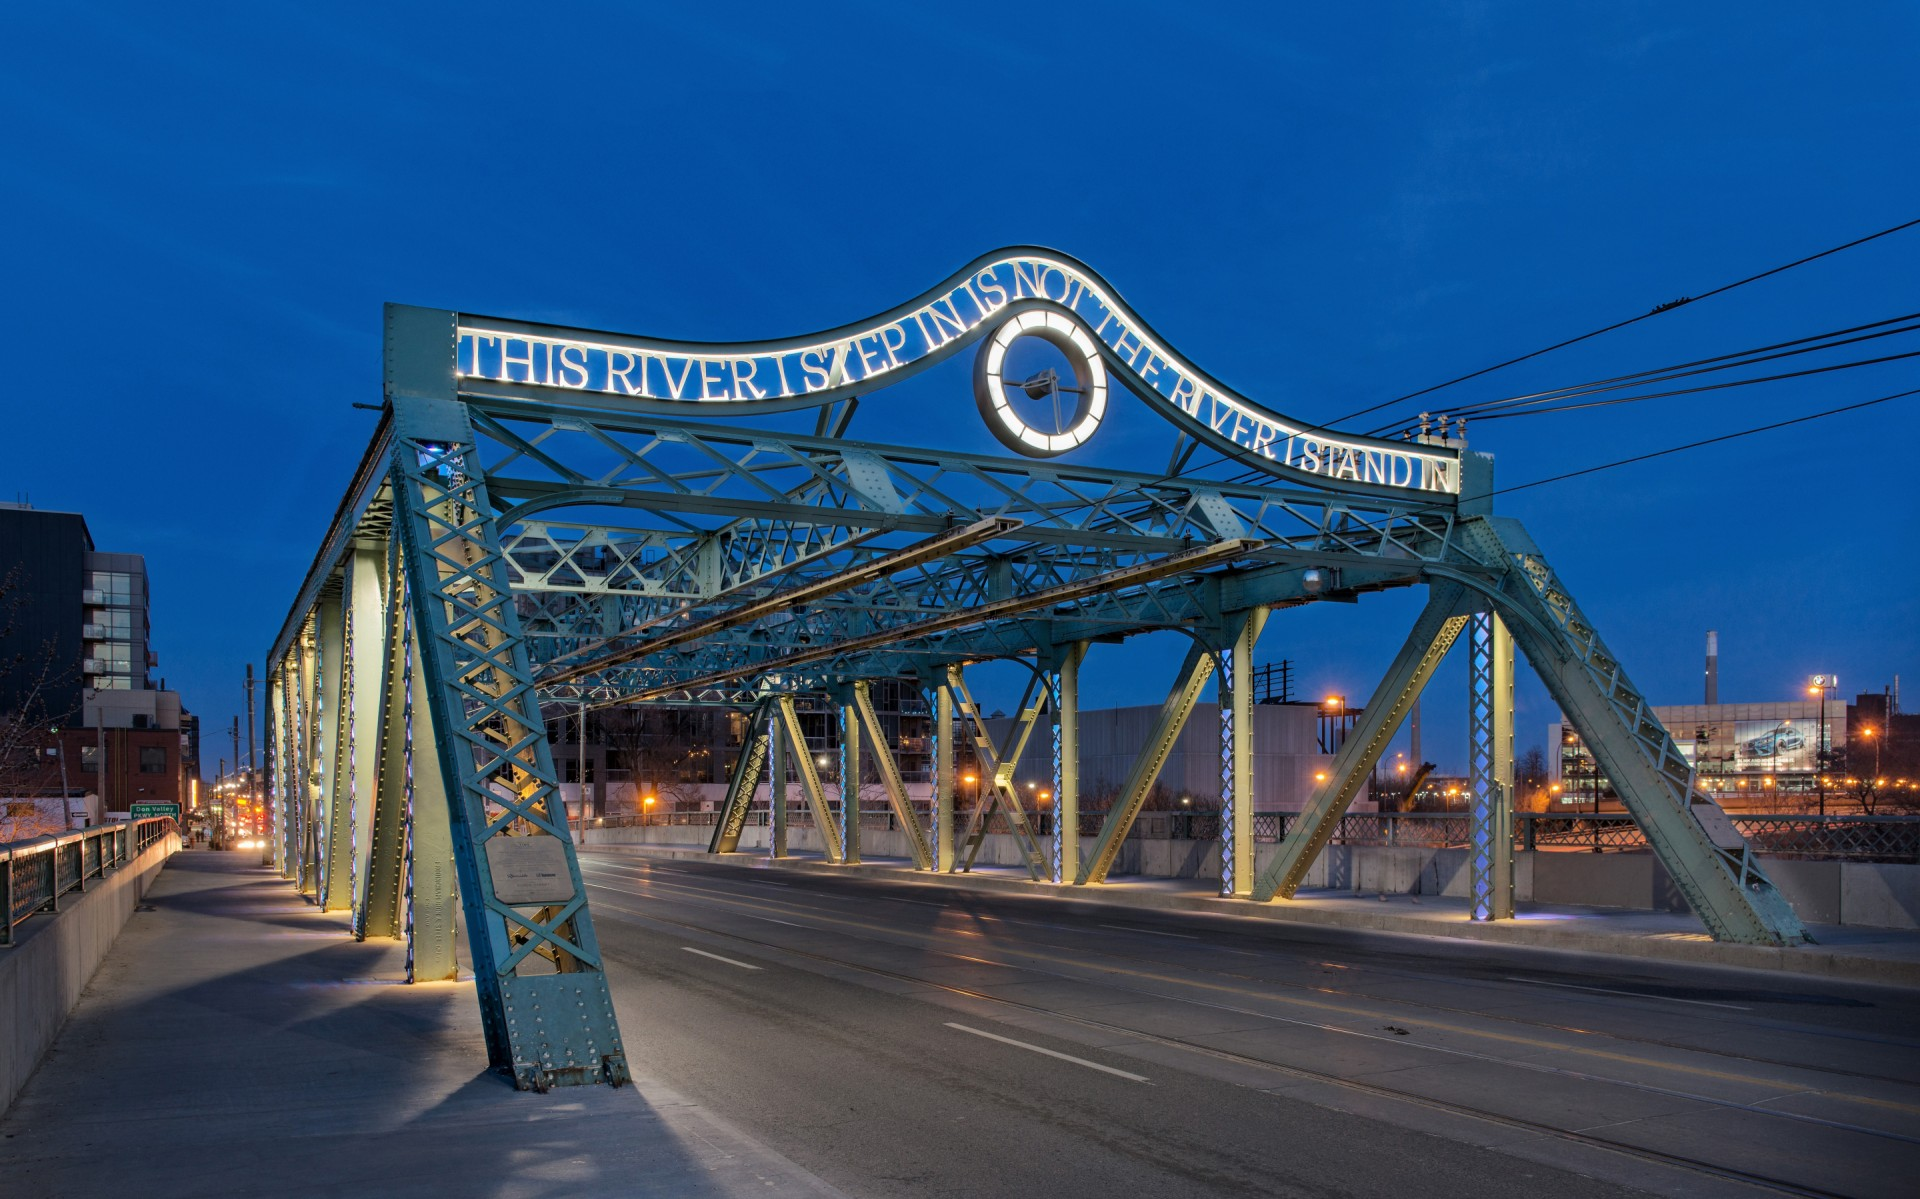 Toronto's Riverside Bridge was built in 1911 and revitalized in 2006 with artwork by Eldon Garnet.